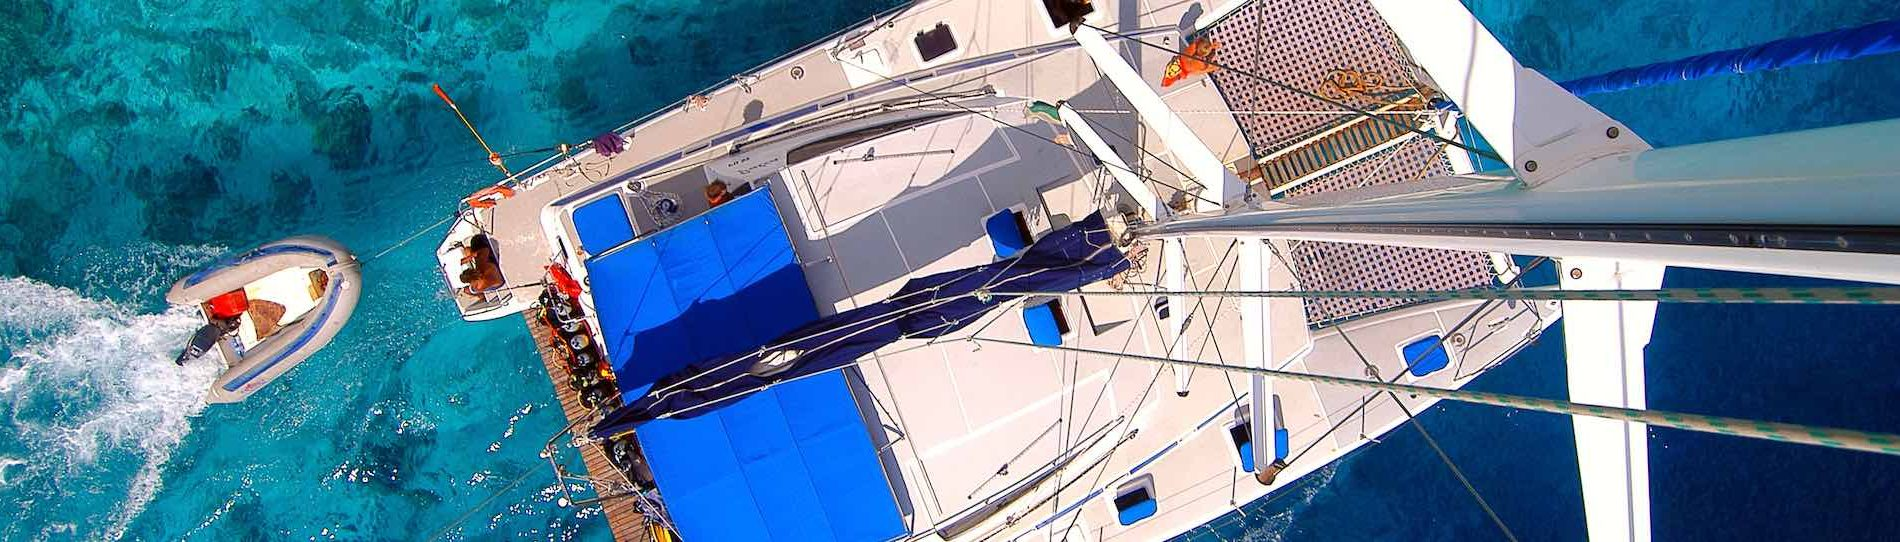 birds eye view of large boat in ocean